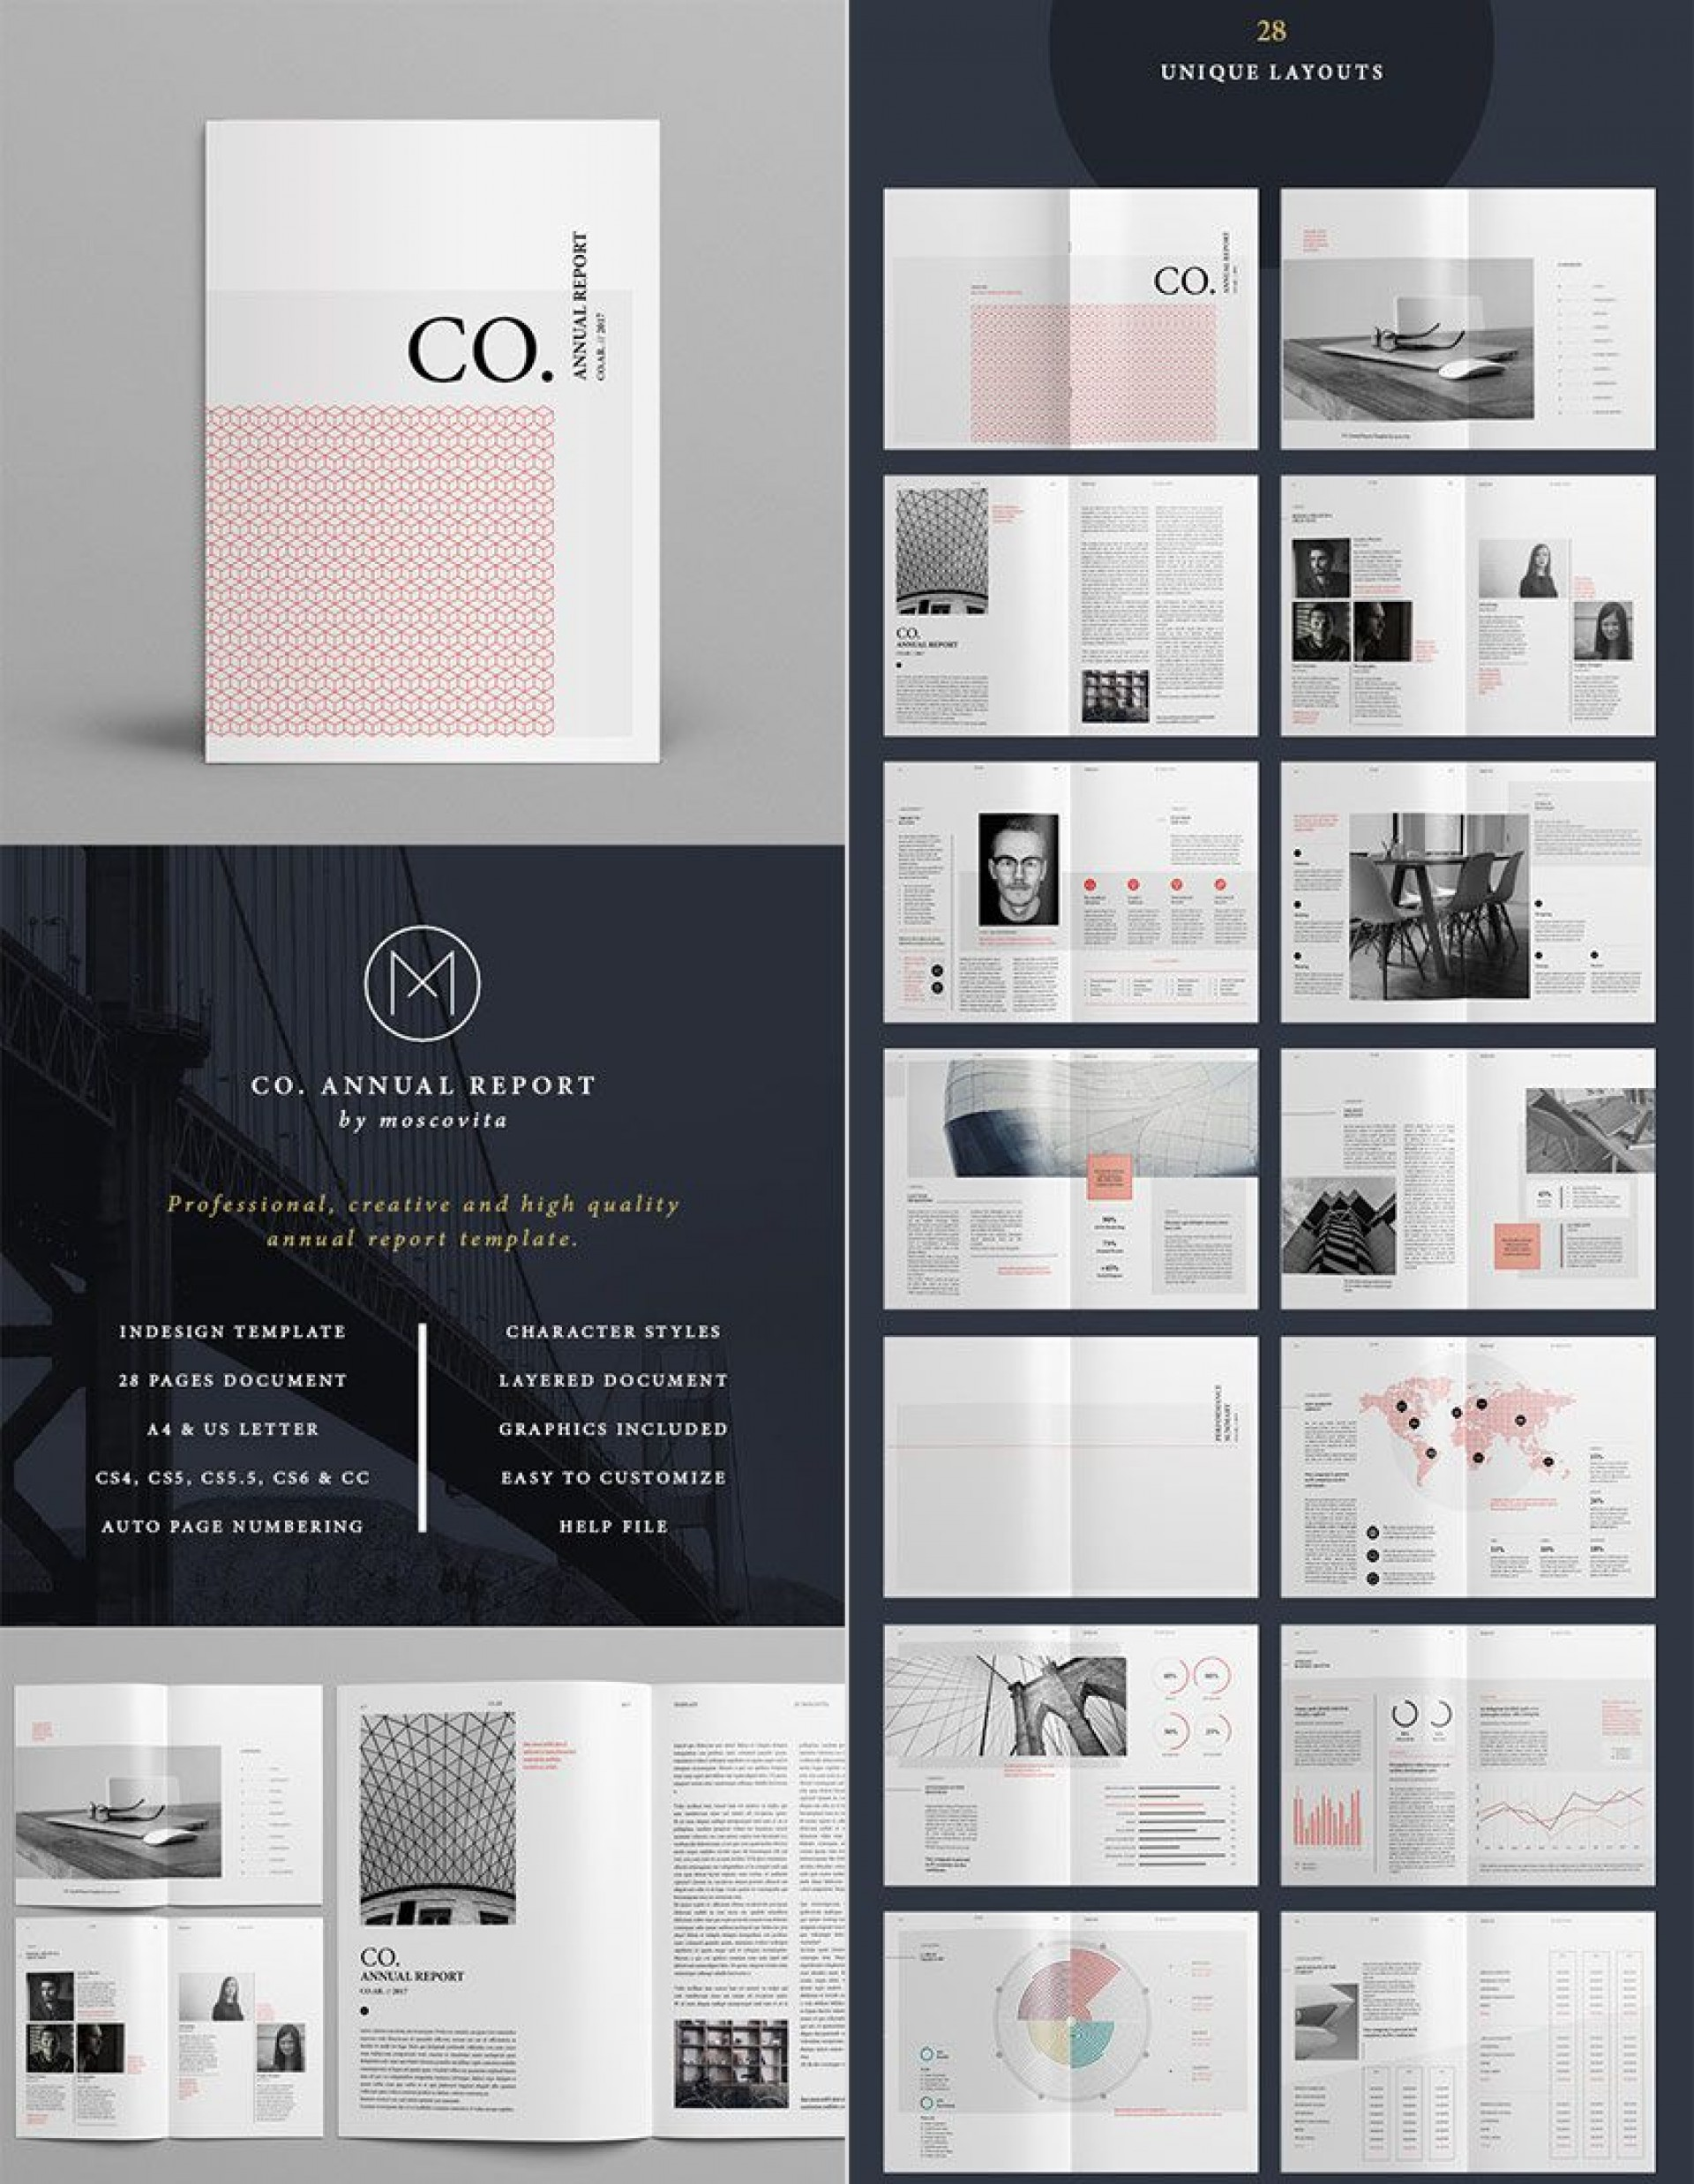 007 Frightening Free Adobe Indesign Annual Report Template Inspiration 1920